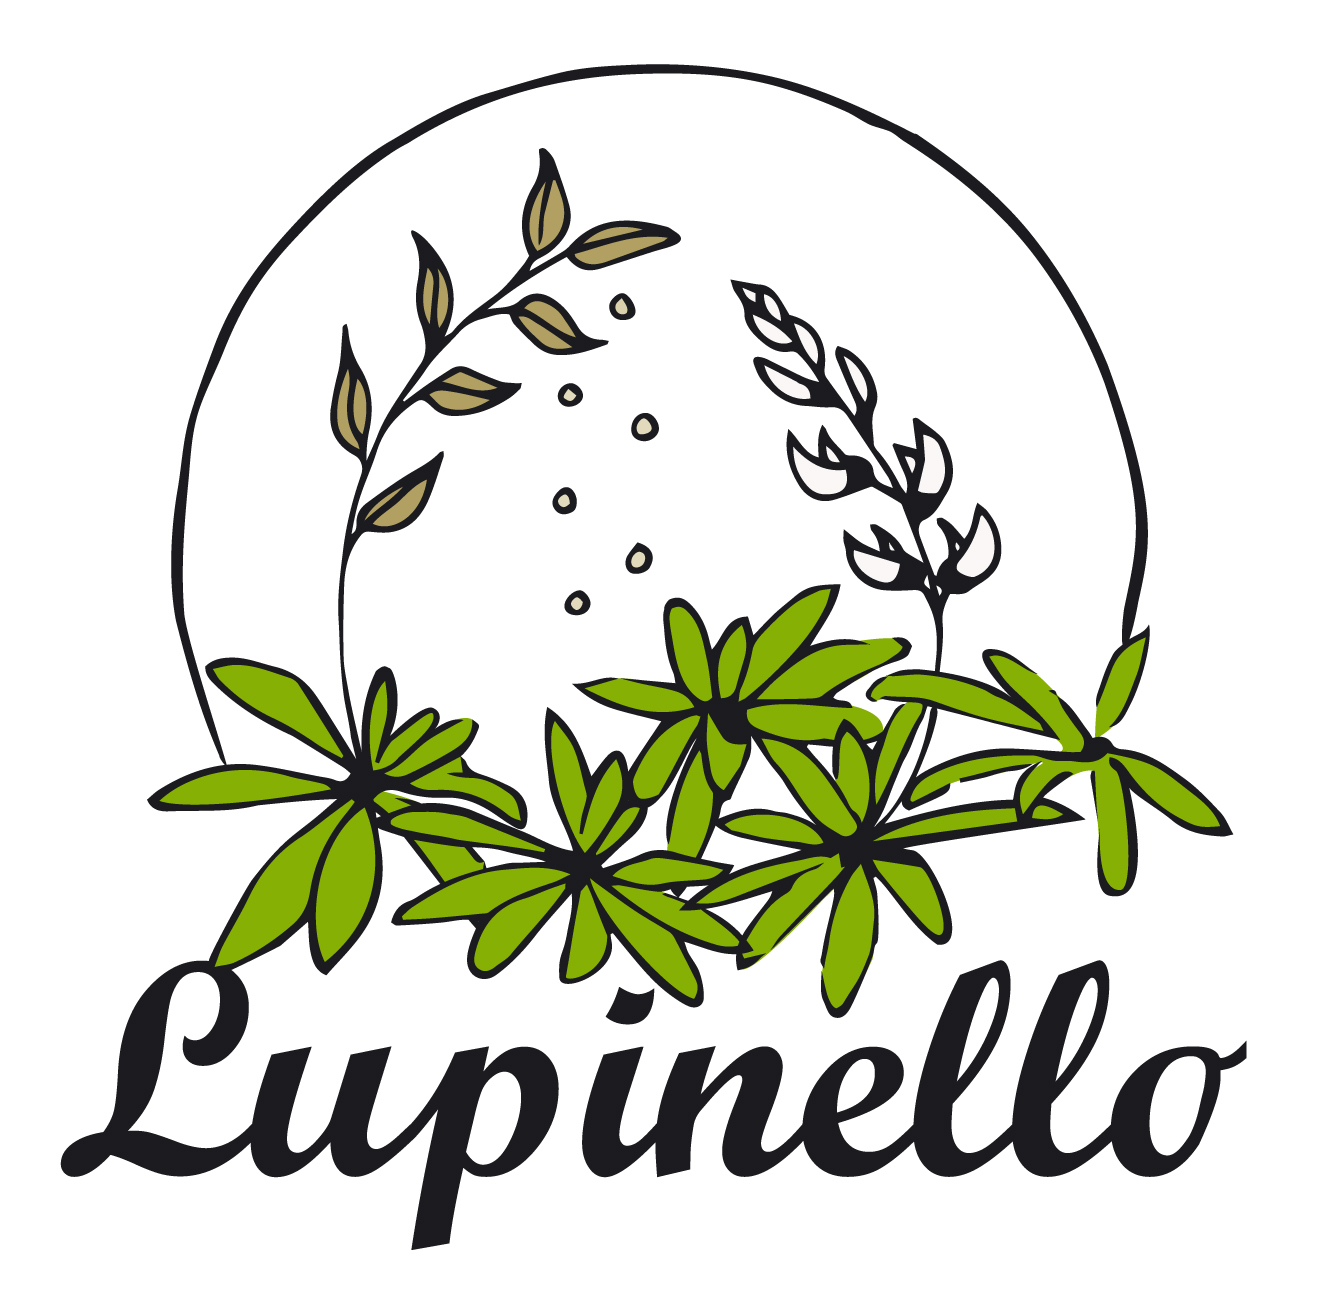 Lupinello